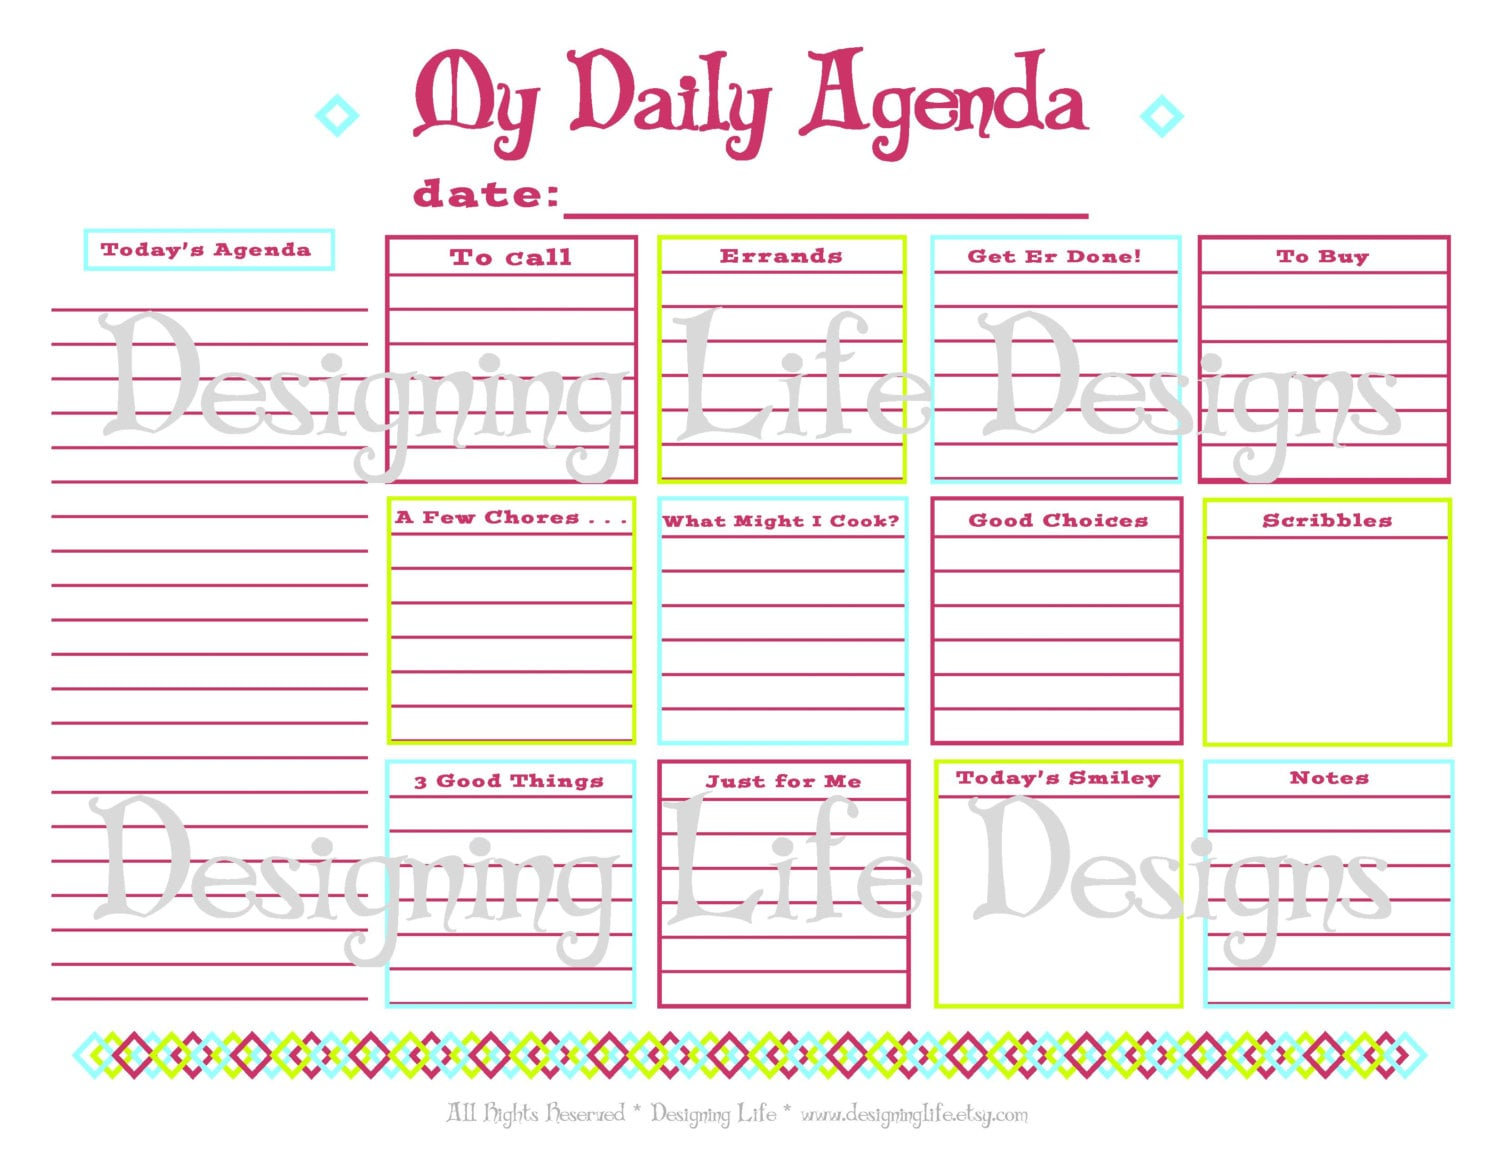 agenda list - Military.bralicious.co